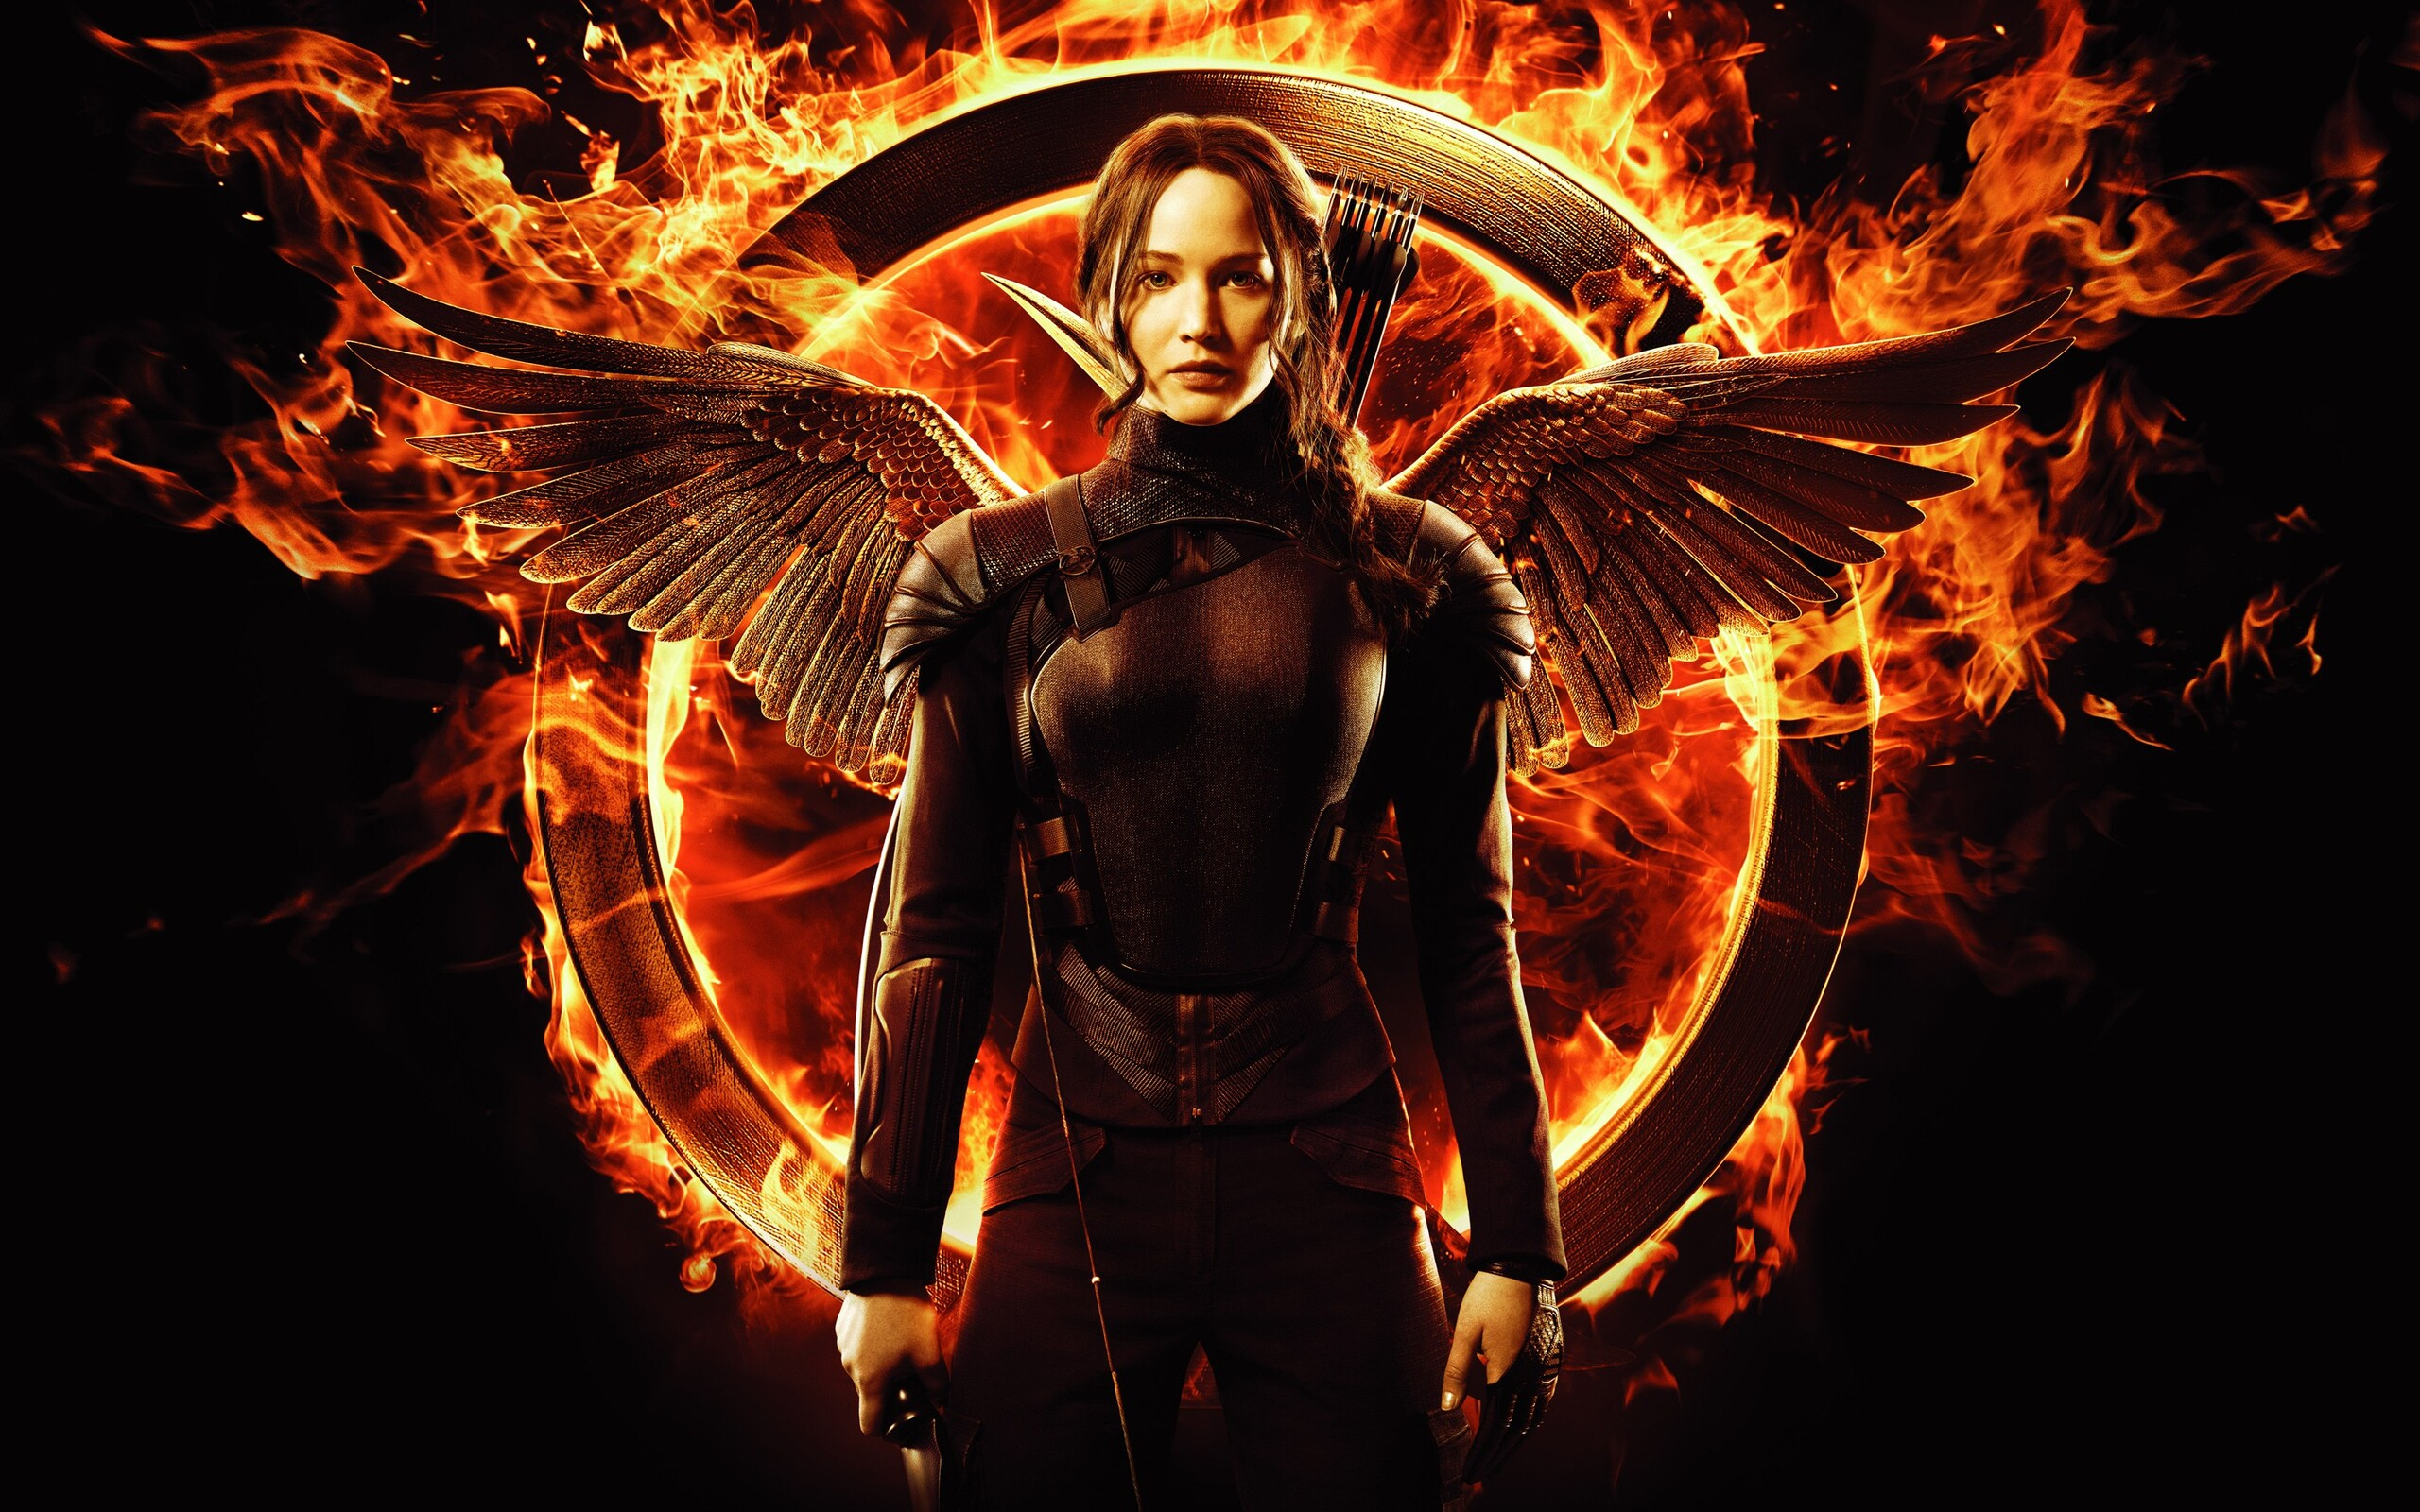 jennifer-lawrence-in-hunger-games.jpg